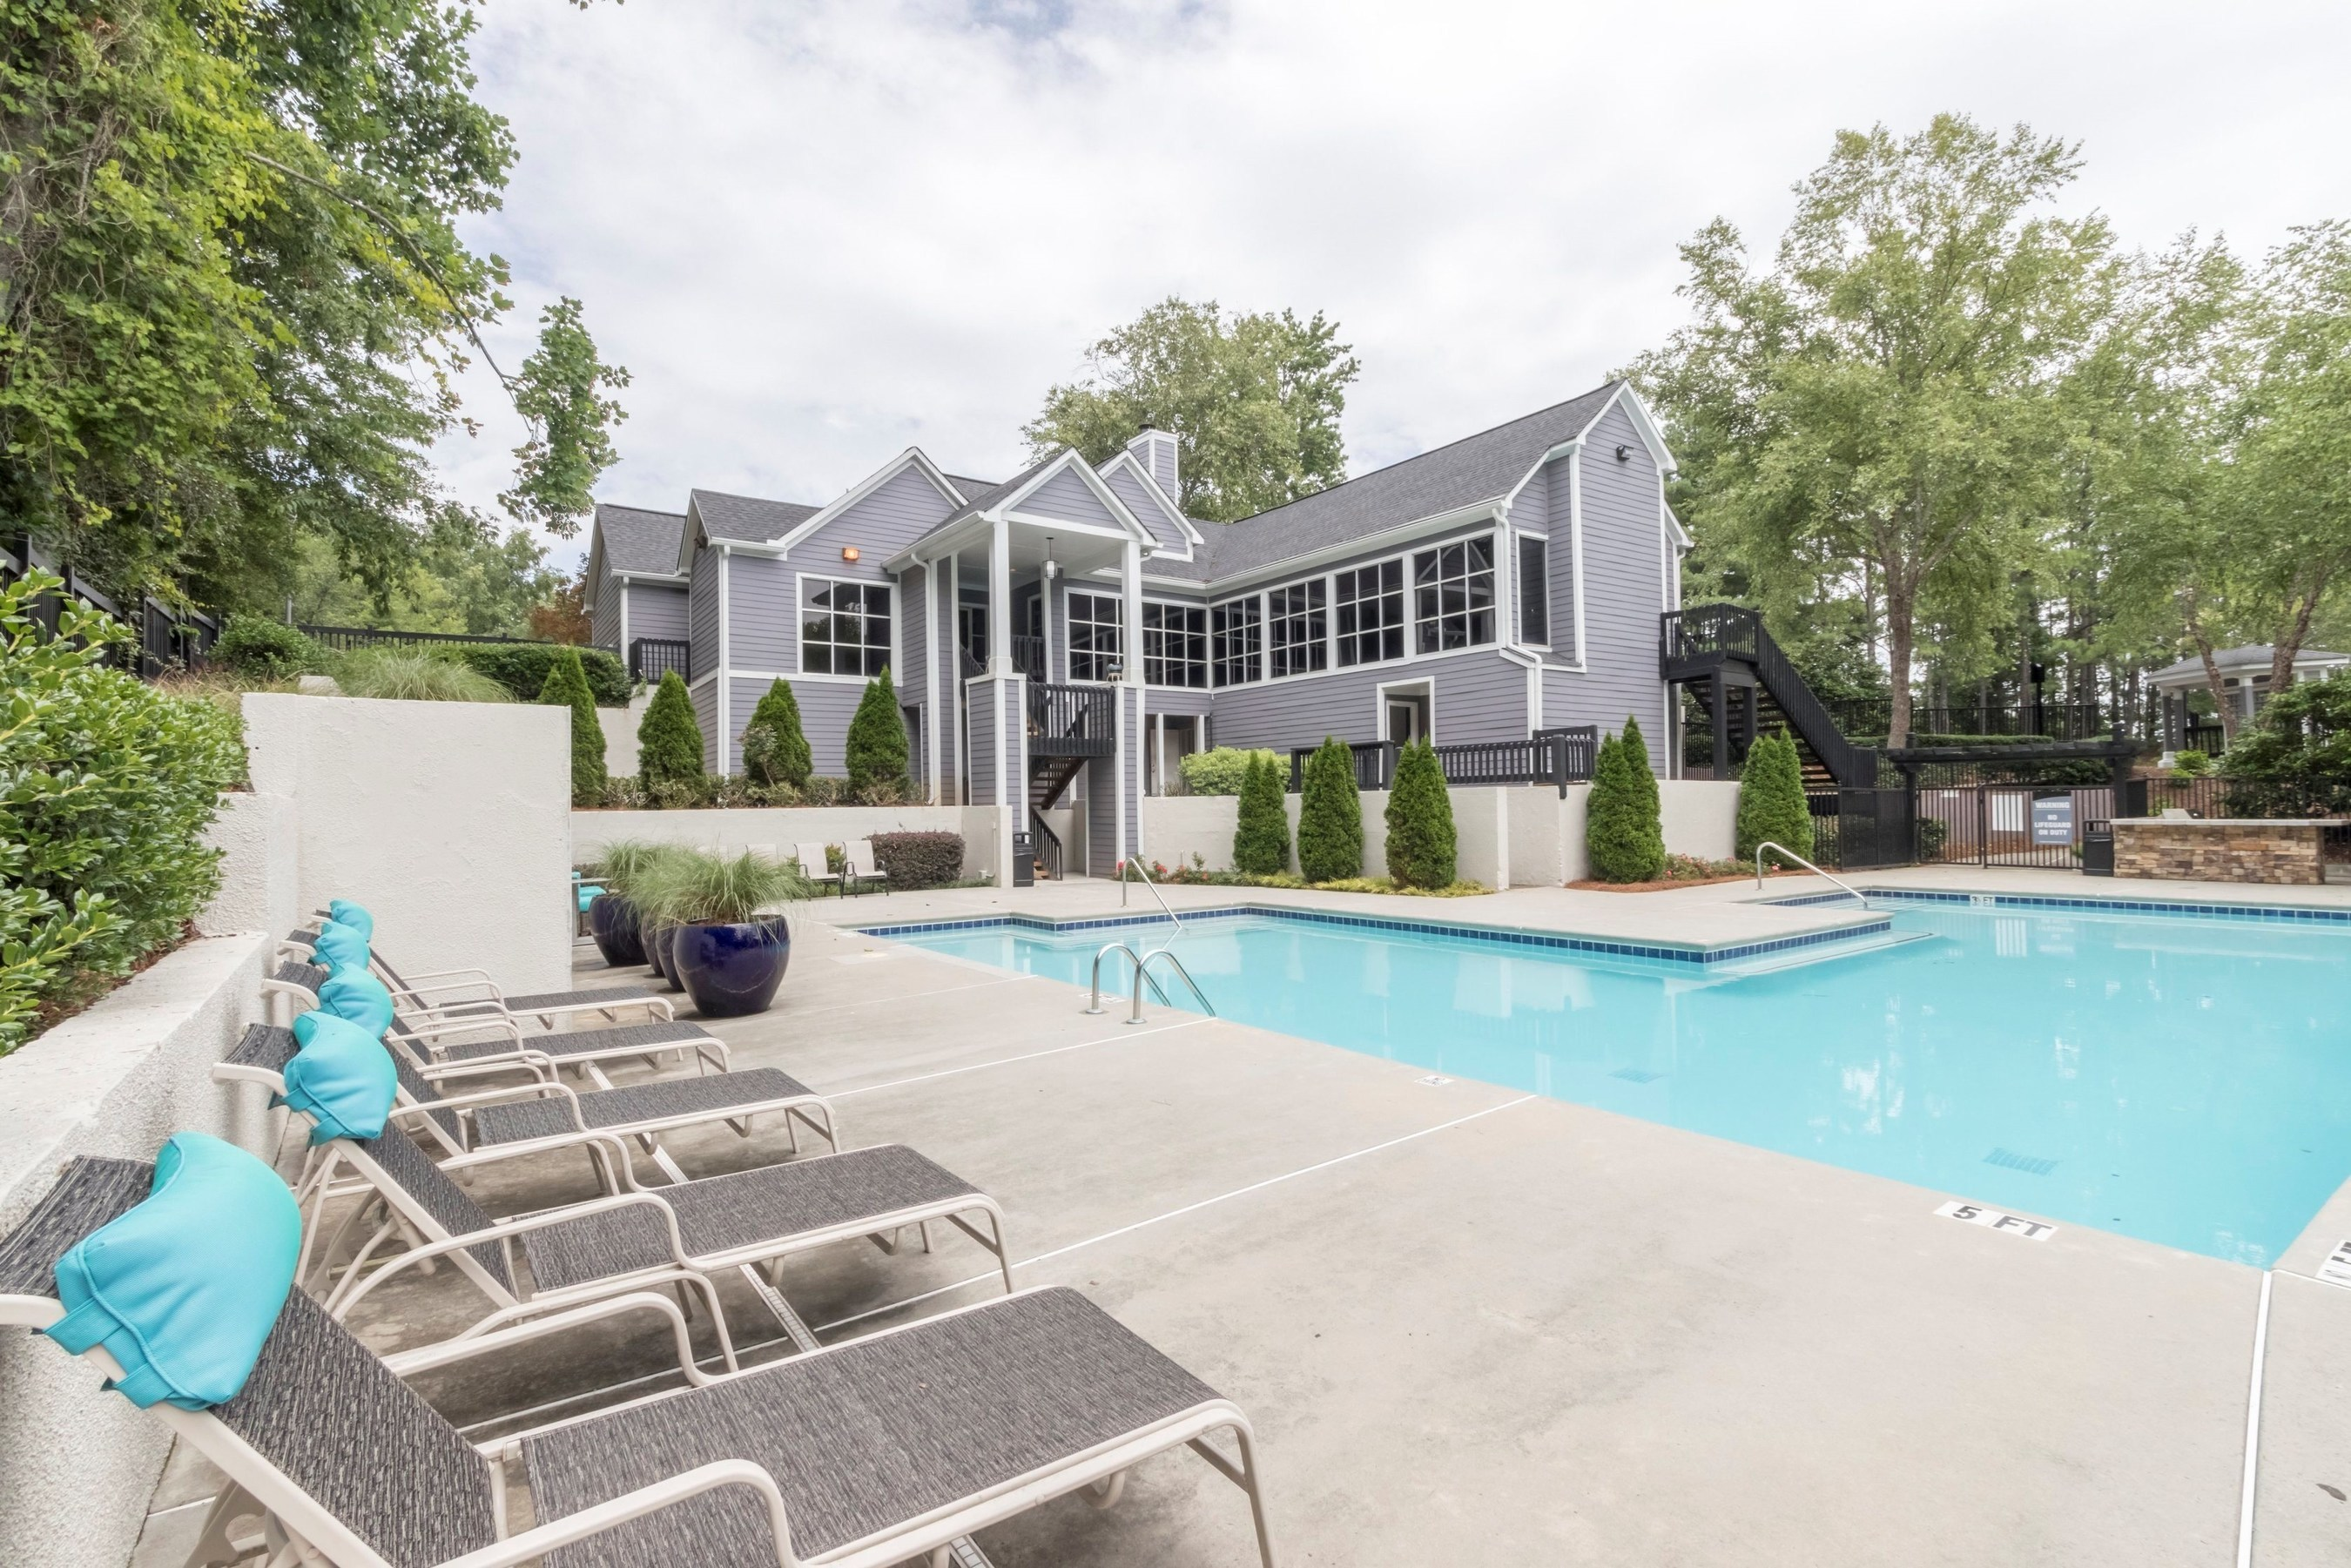 TerraCap Management Acquires 236-Unit Enclave at Roswell Apartment Community in Northern Atlanta Suburb of Roswell, Georgia